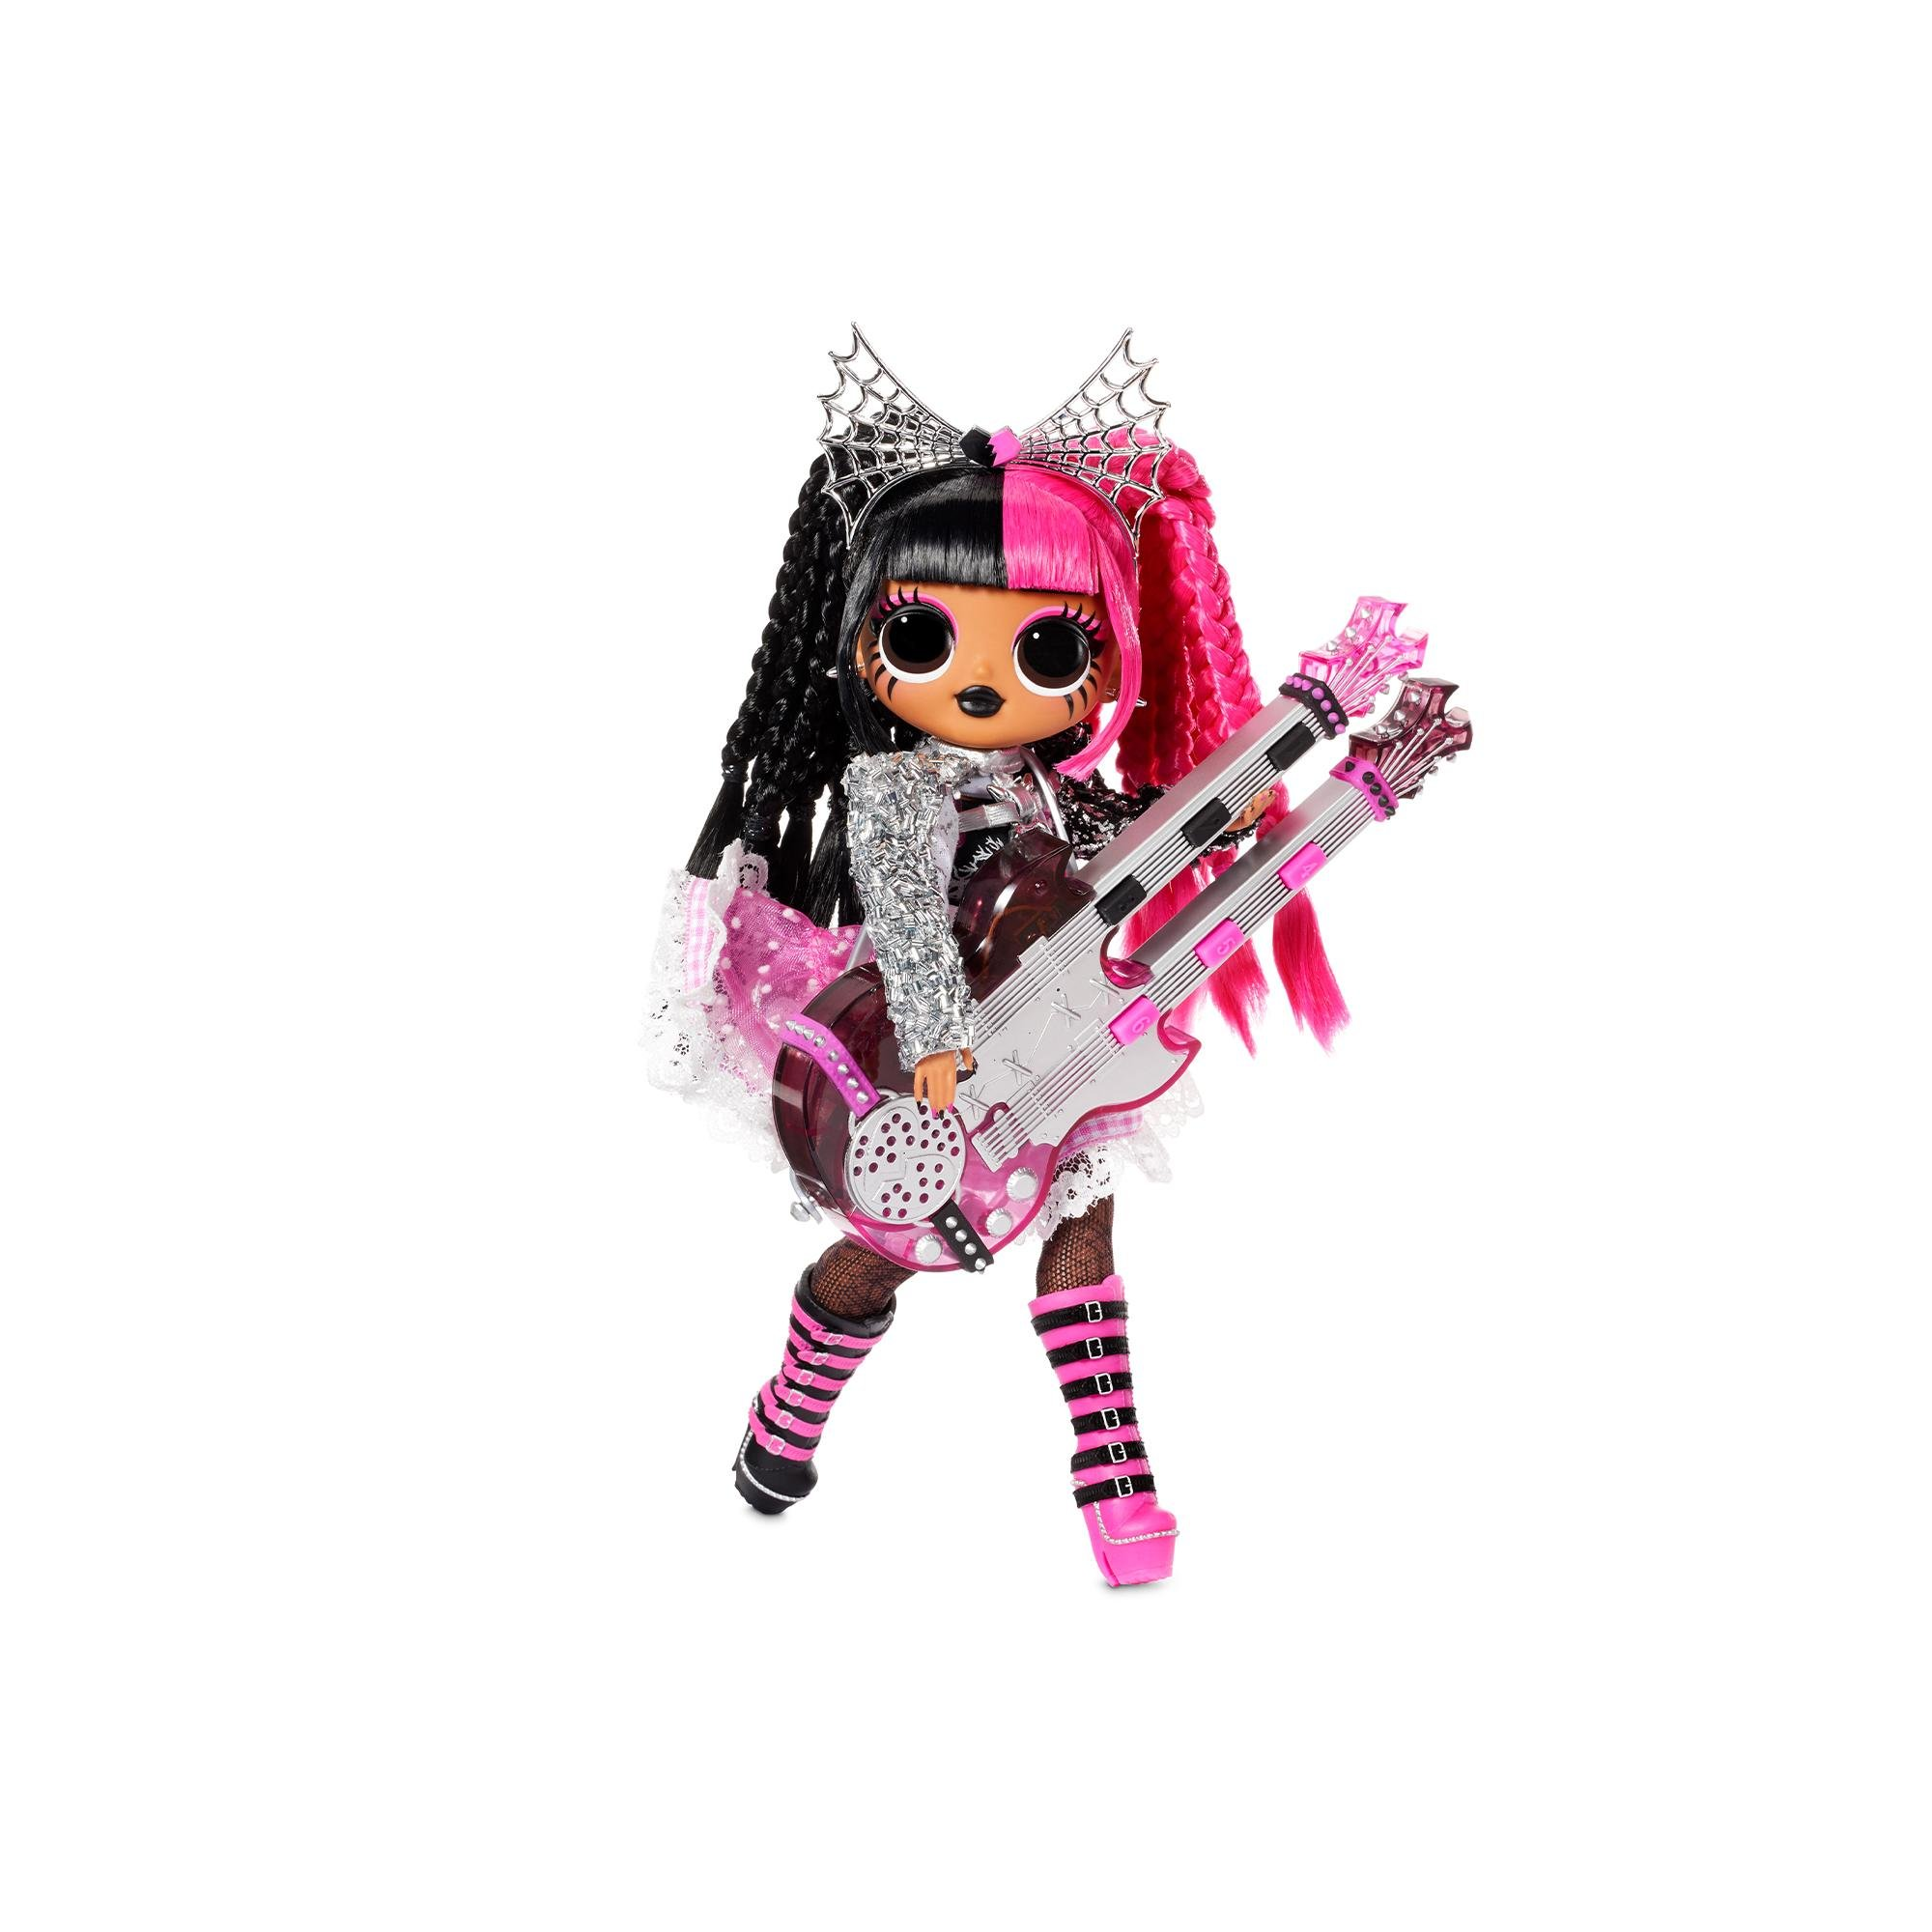 L.O.L. Surprise - OMG Remix Rock Doll - Metal Chick and Electric Guitar